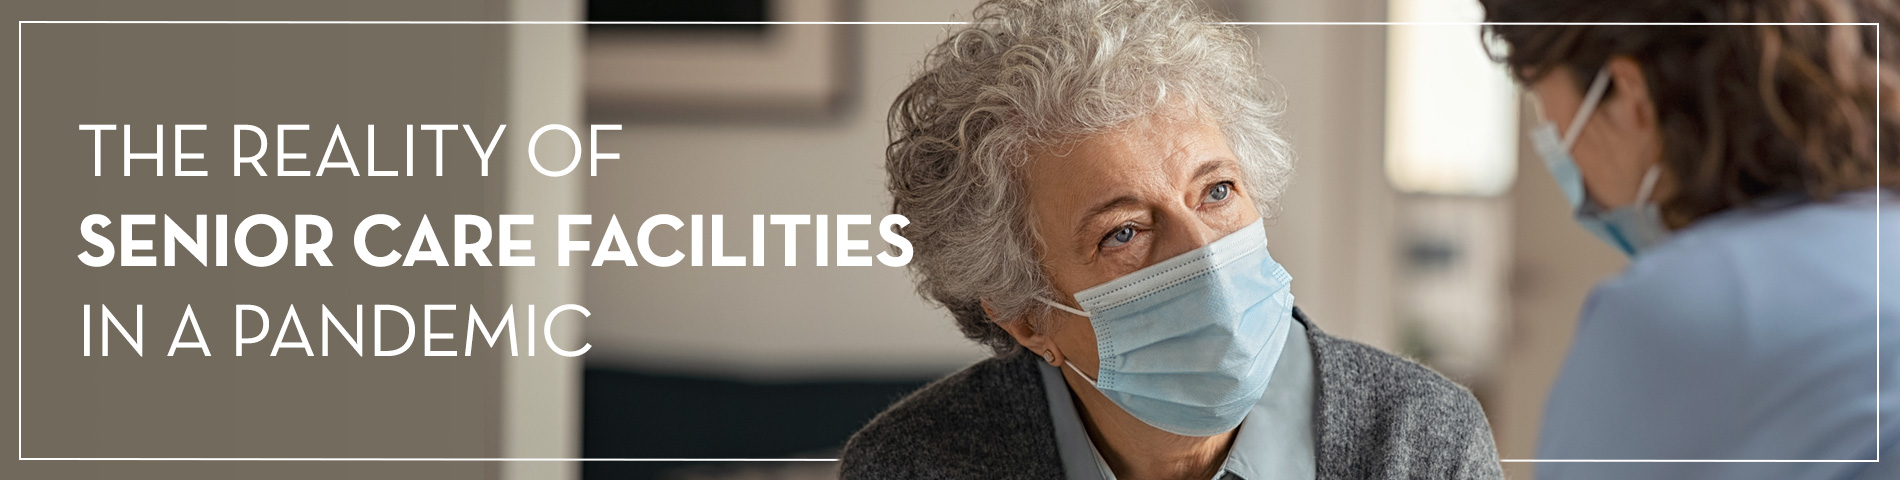 Senior Care During a Pandemic